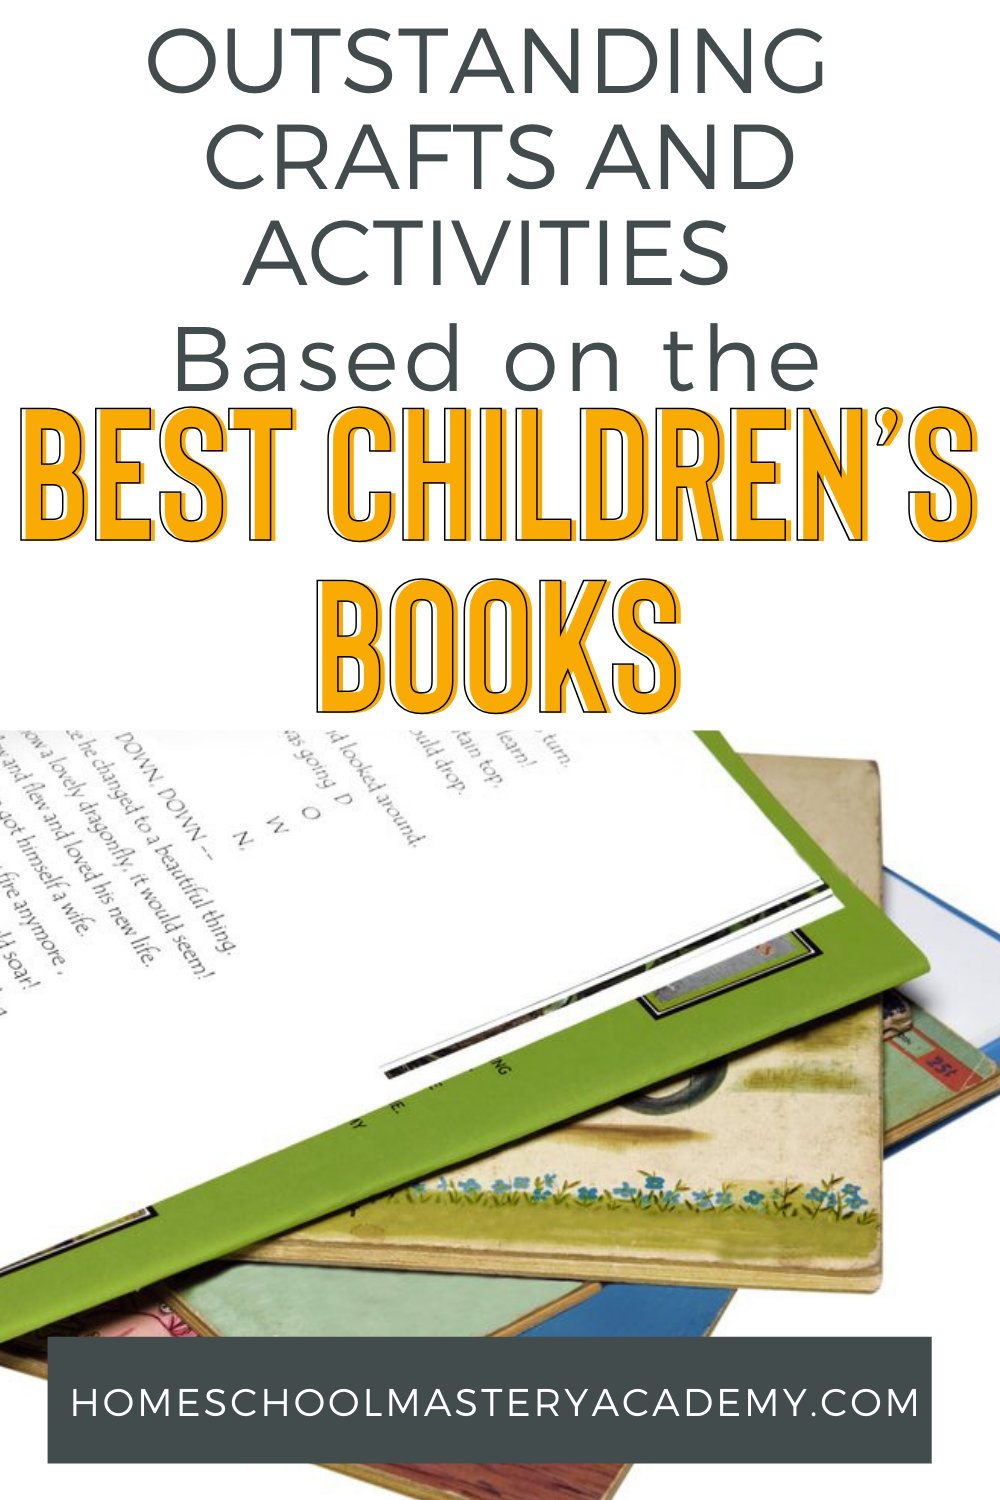 Enjoy learning and creating after the book is over with these activities based on your favorite children's books! These ideas are great for all ages. Perfect for homeschool and classrooms alike. #homeschoolactivities #childrensbooks #homeschoolideas #handson #homeschoolcrafts #kidscrafts